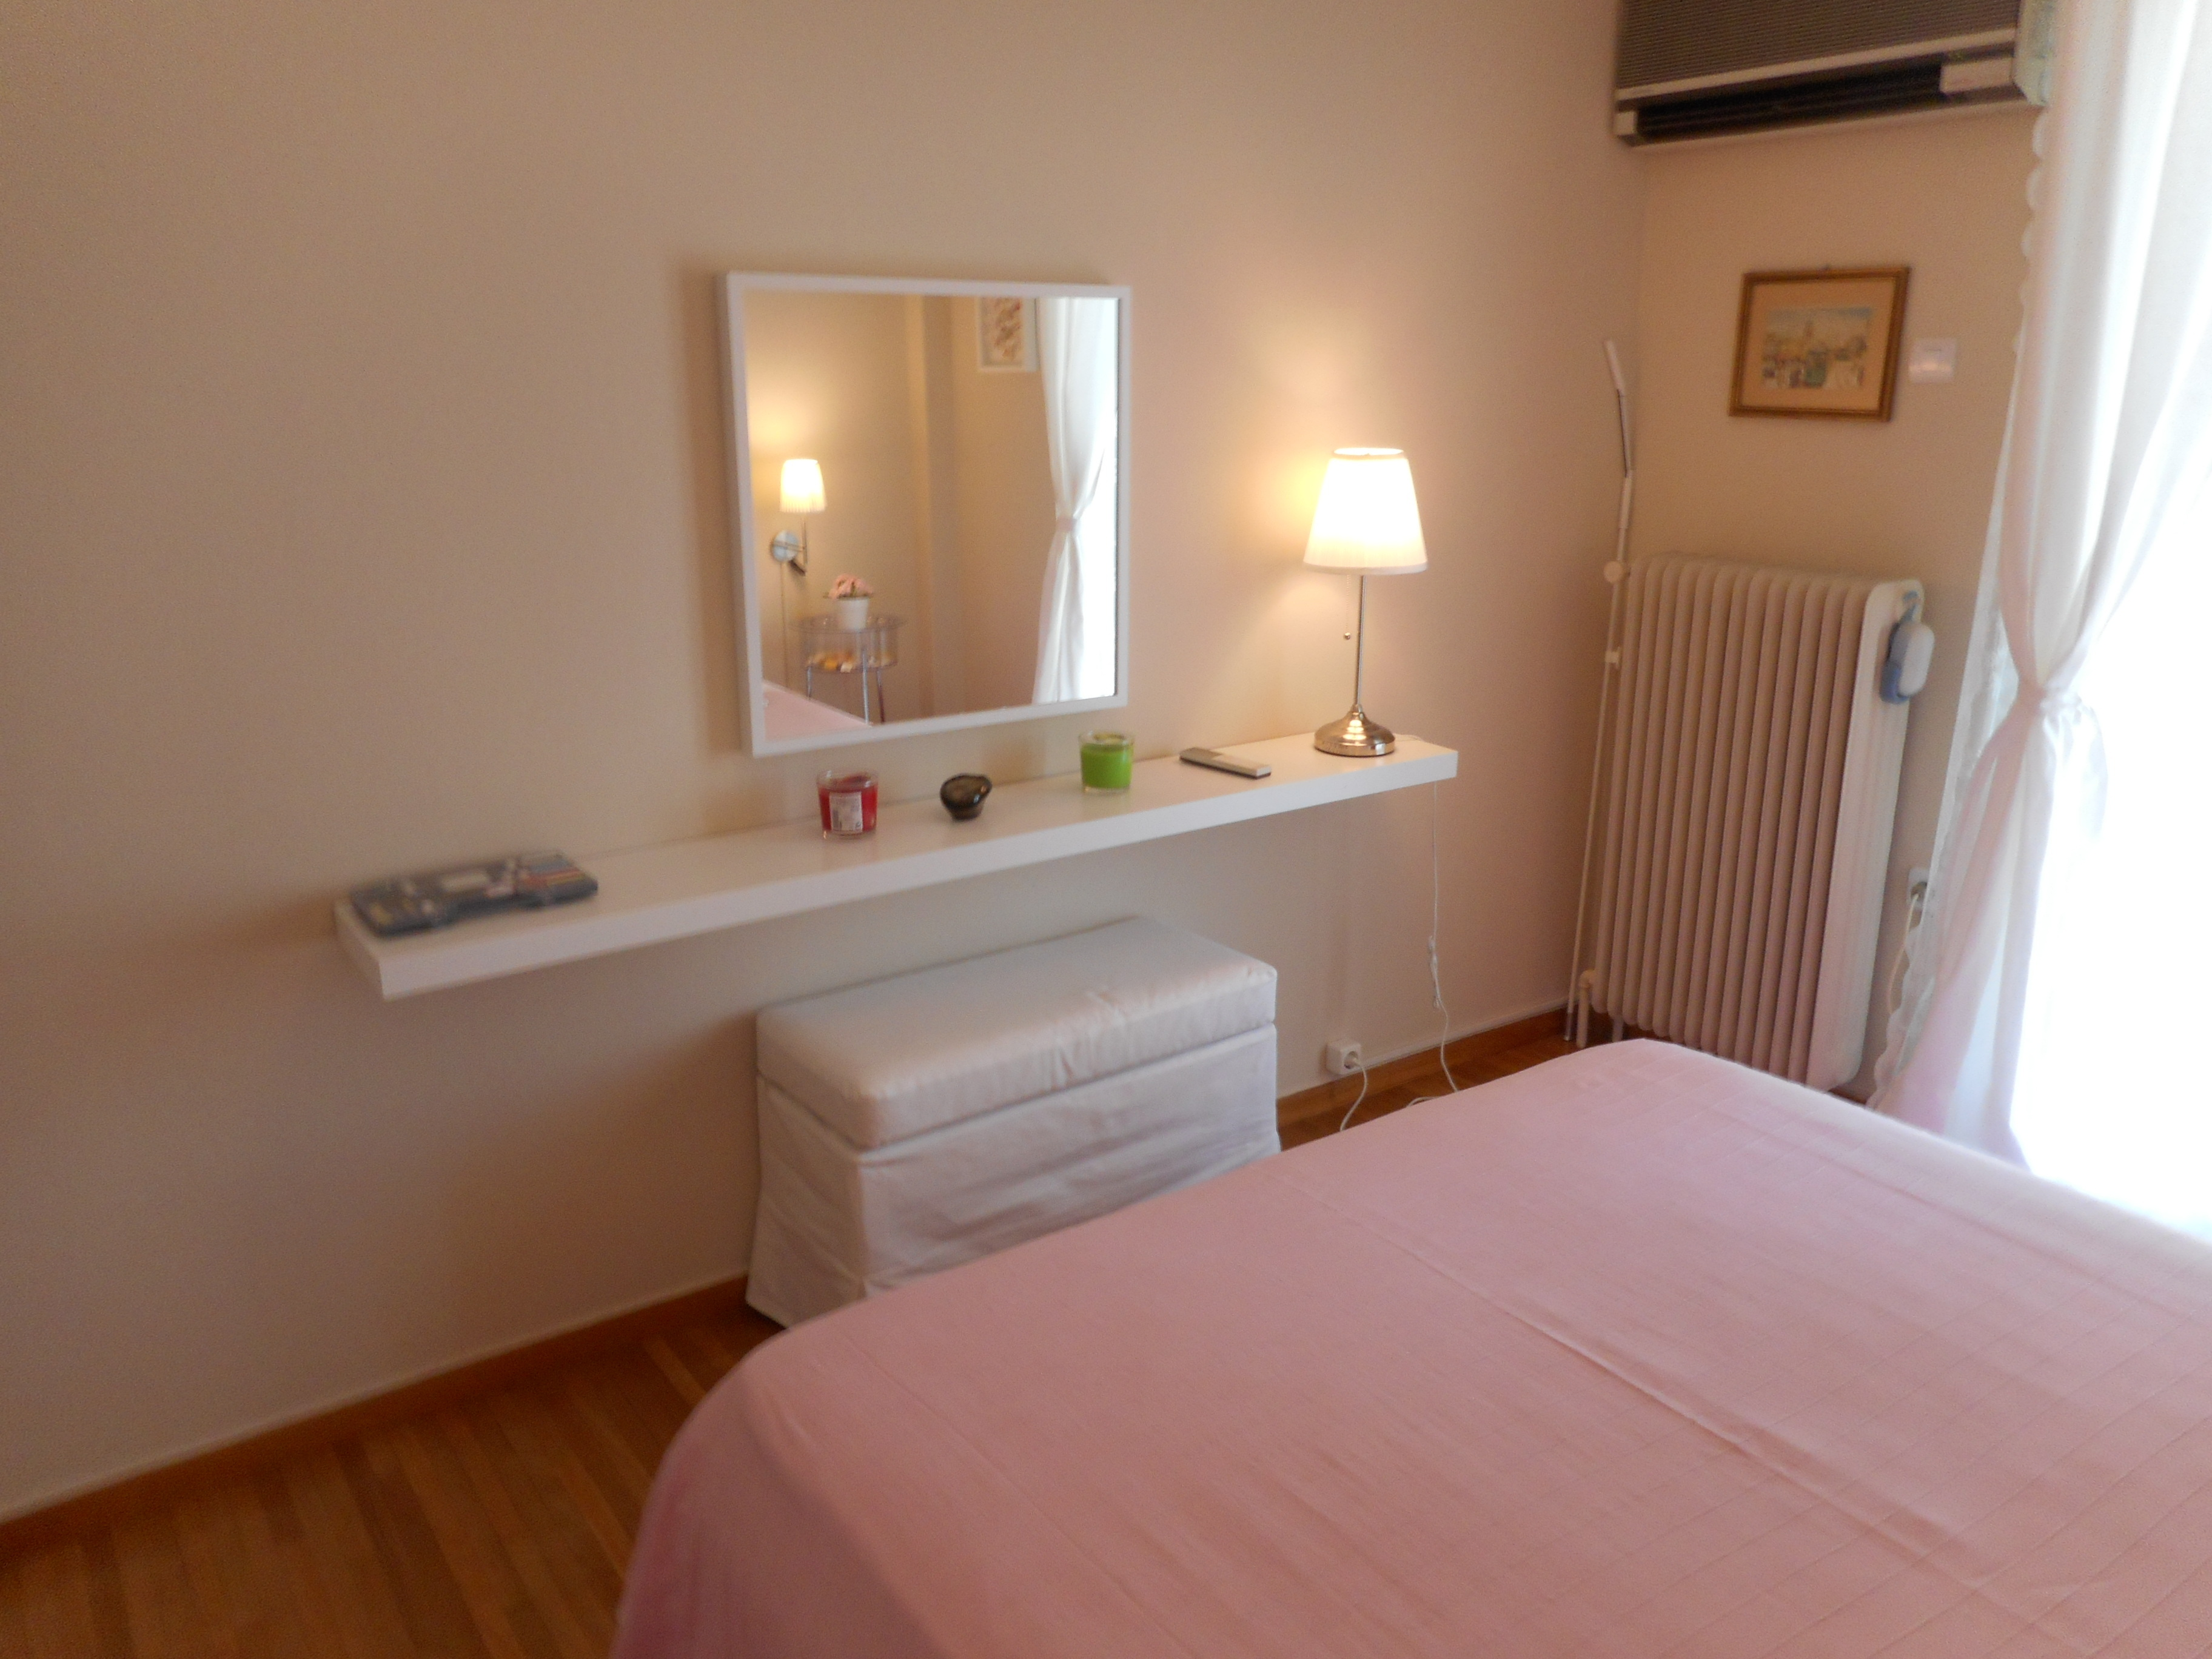 Ultracareapartments - Athens - City Center - 1 Bedroom Apartment photo 21795764